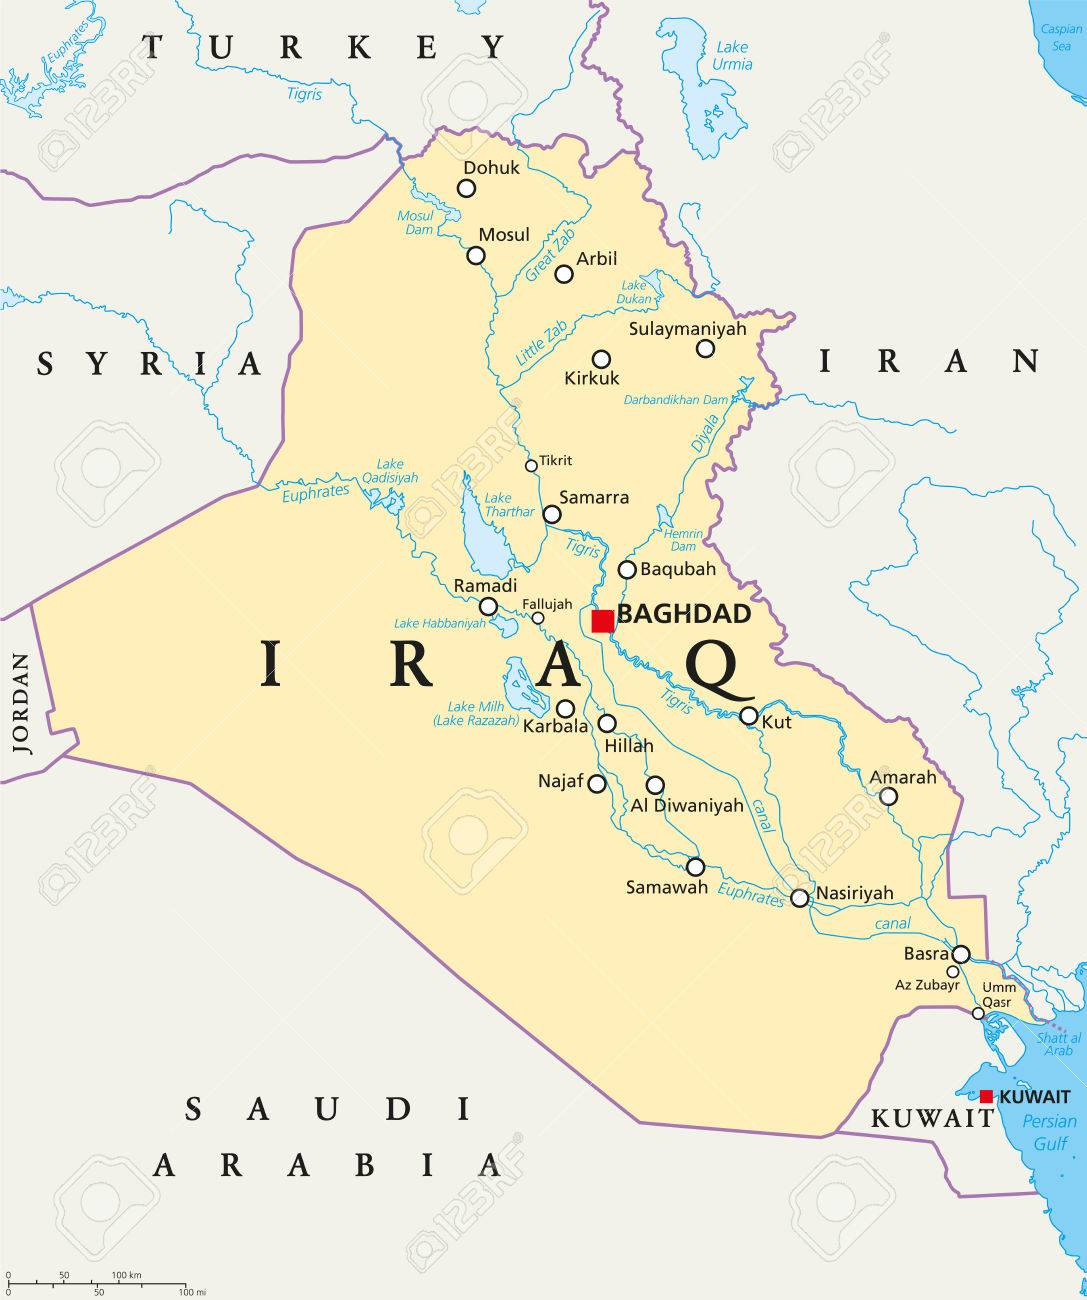 Iraq Political Map With Capital Baghdad National Borders Important